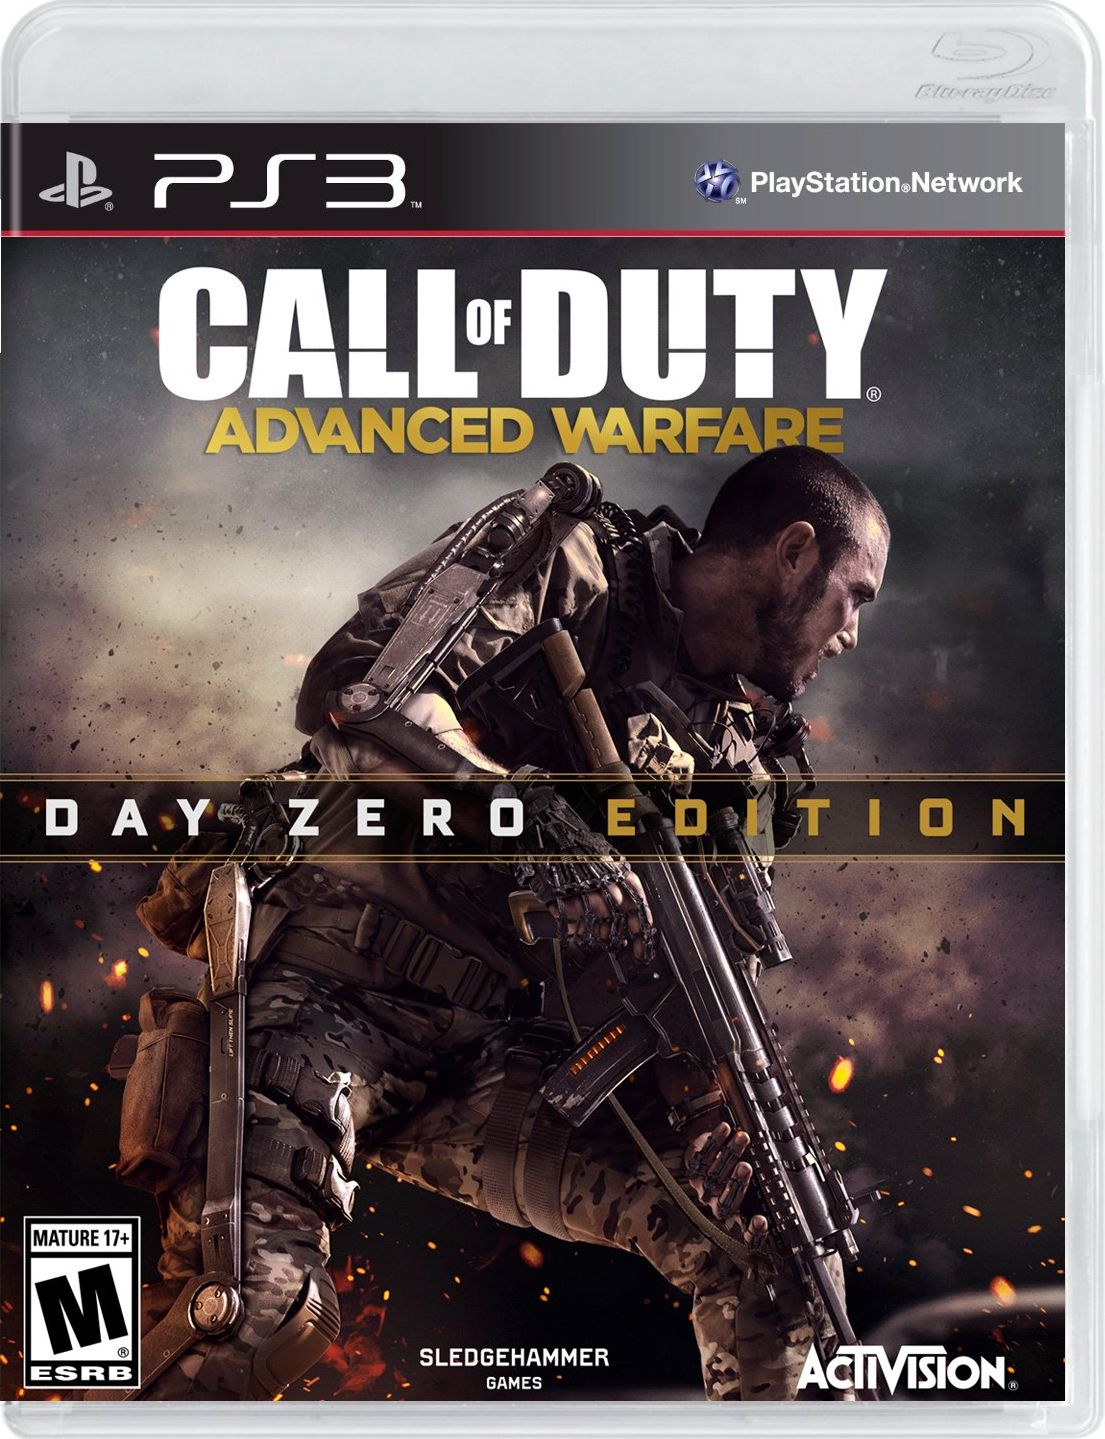 of Duty: Advanced Warfare trailer reveals November 4th release date ...